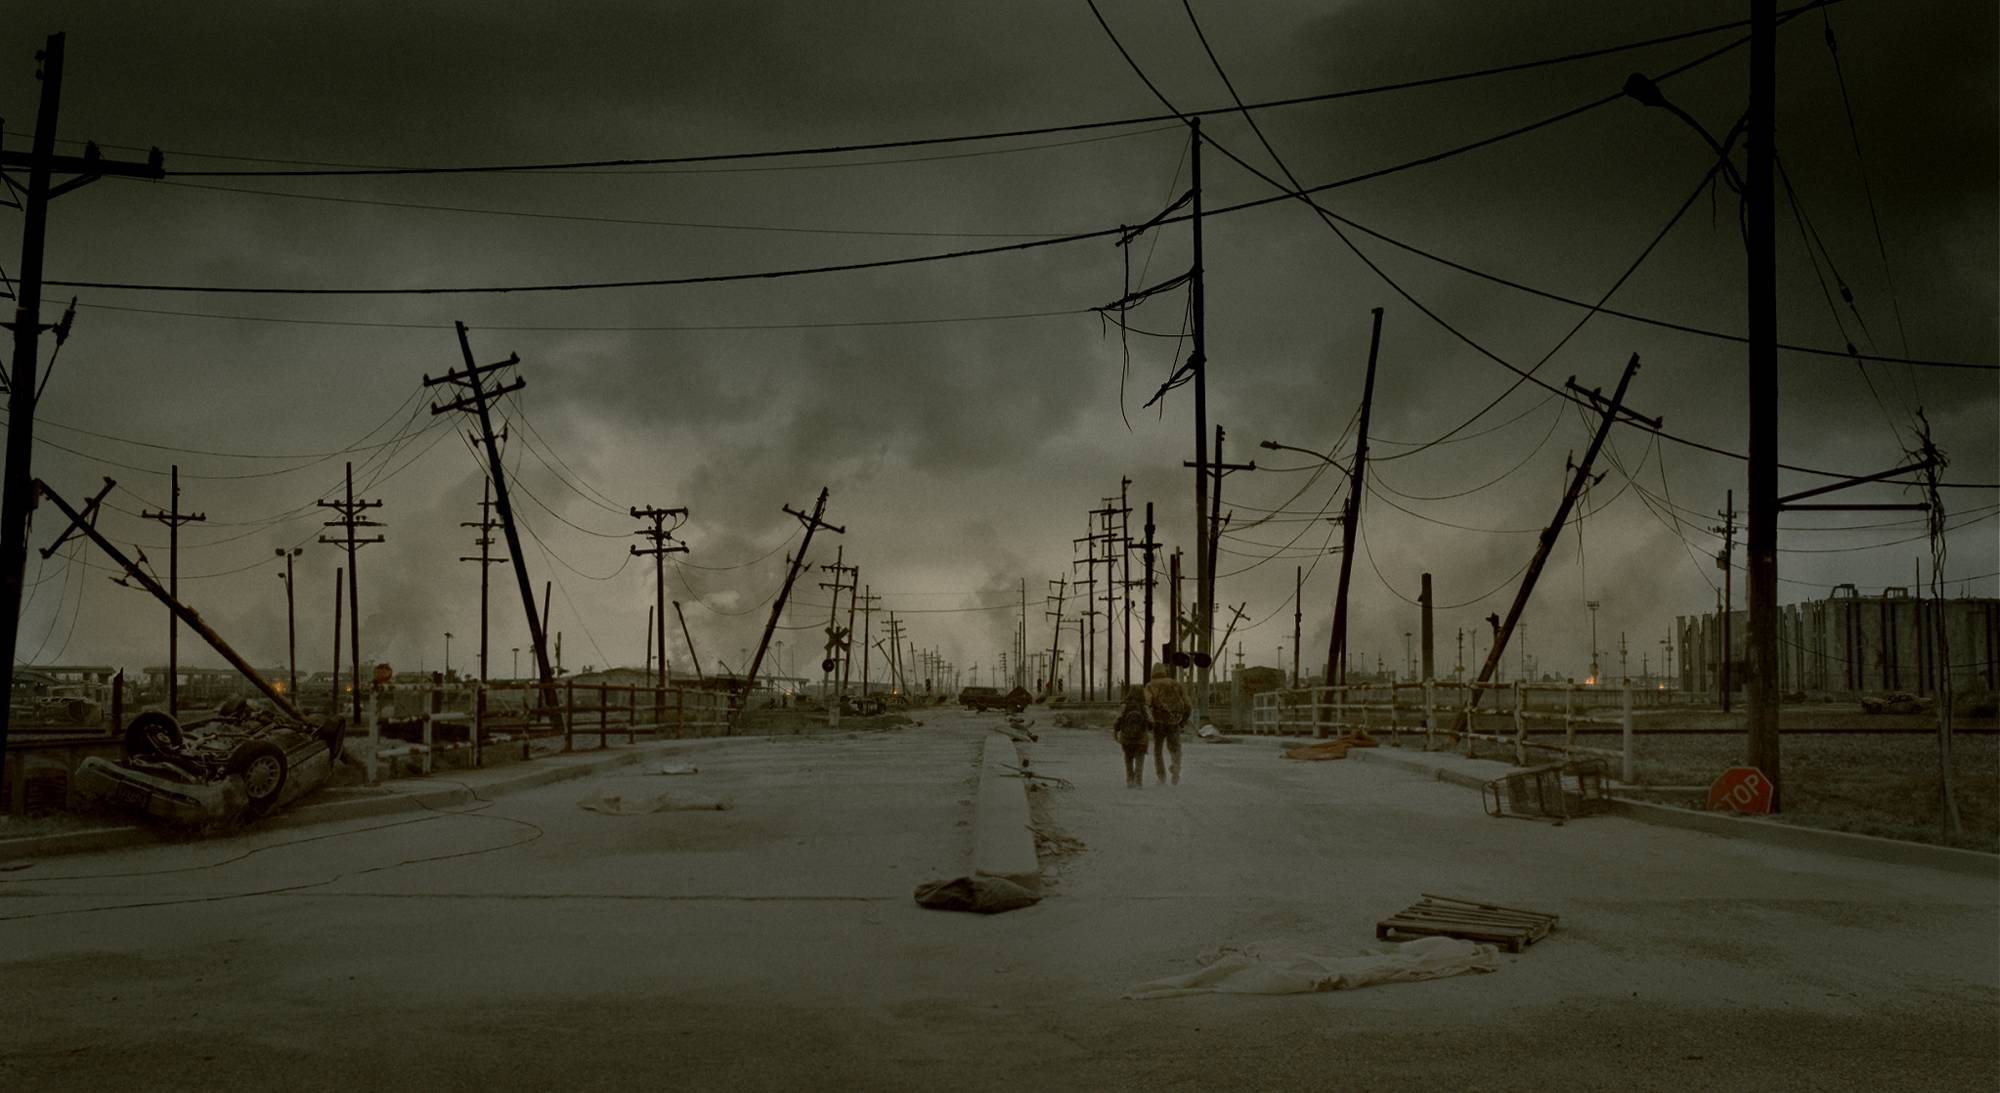 2929 Productions / via  stuffpoint.com  - Pictured here is a still from John Hillcoat's 2009 adaptation of Cormac McCarthy's  The Road .